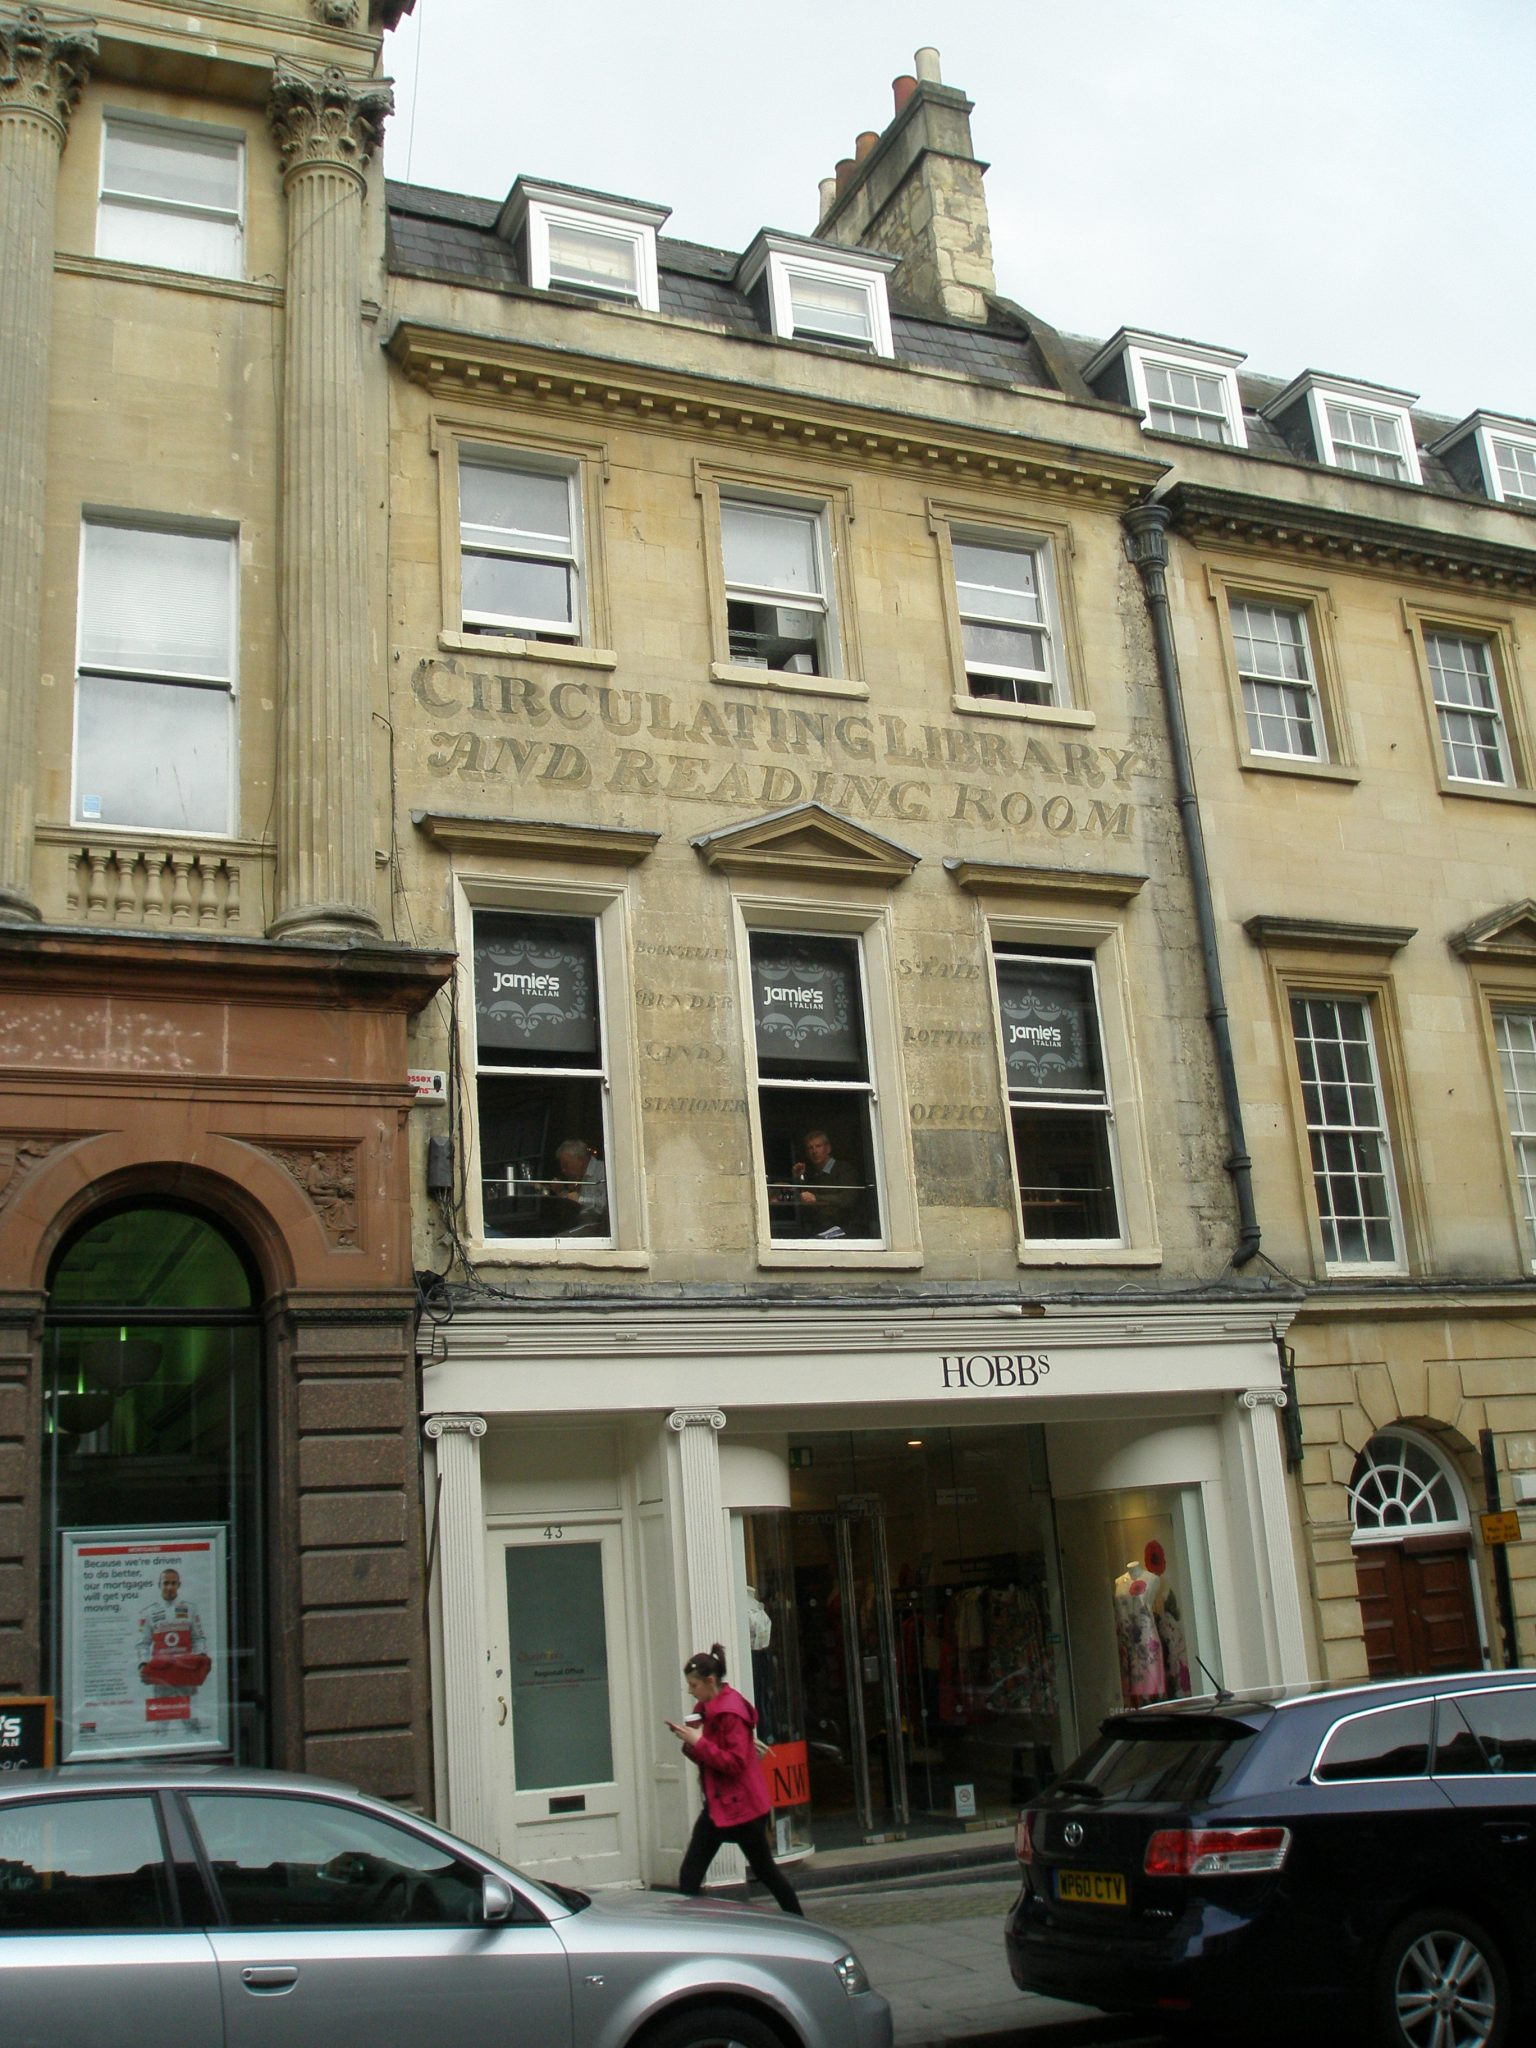 Site of the Circulating Library & Reading Room where Jane Austen borrowed books